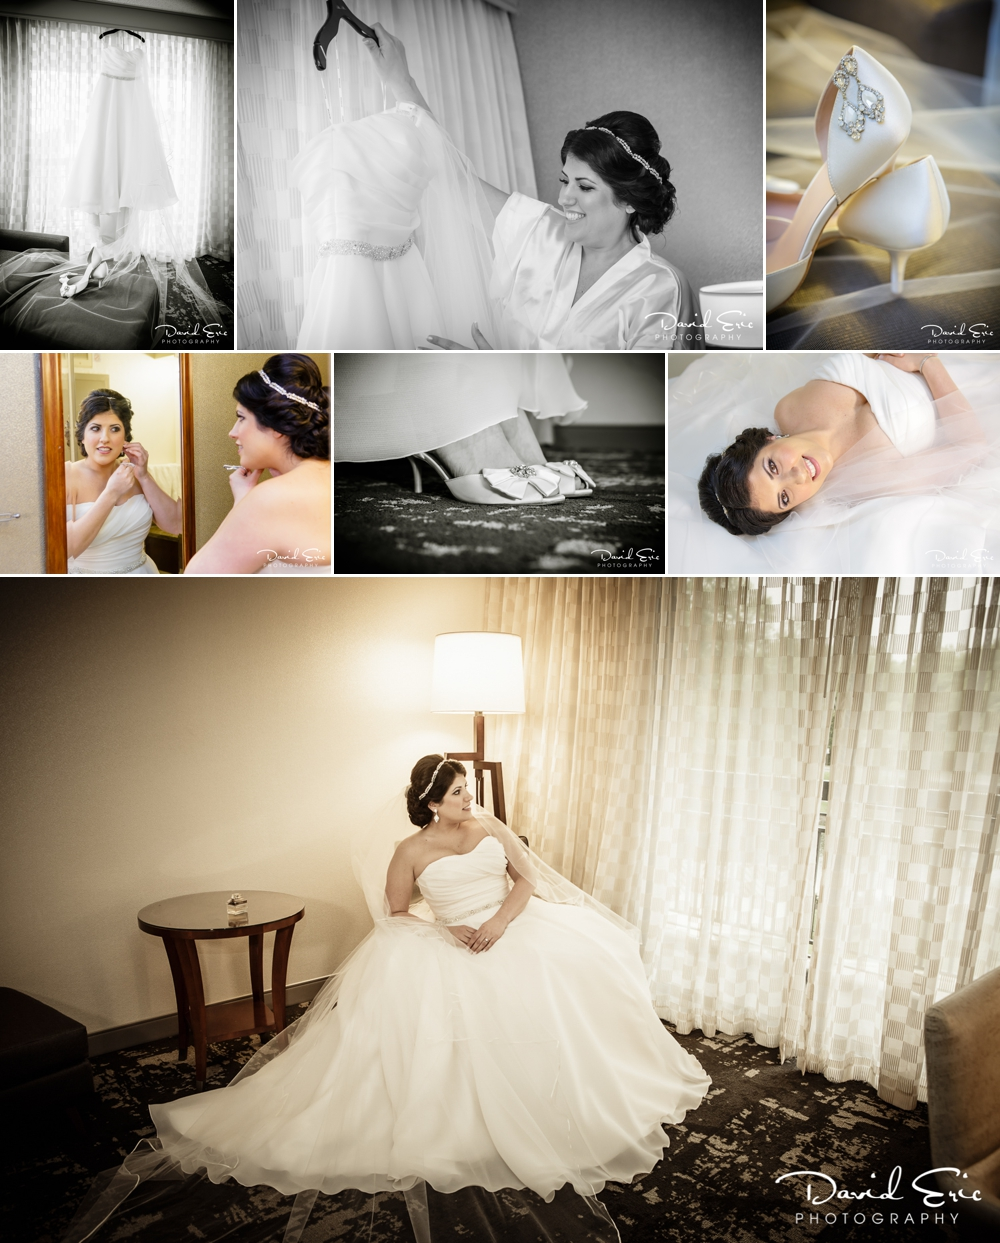 Wedding at the Rockleigh Country Club Rockleigh New Jersey